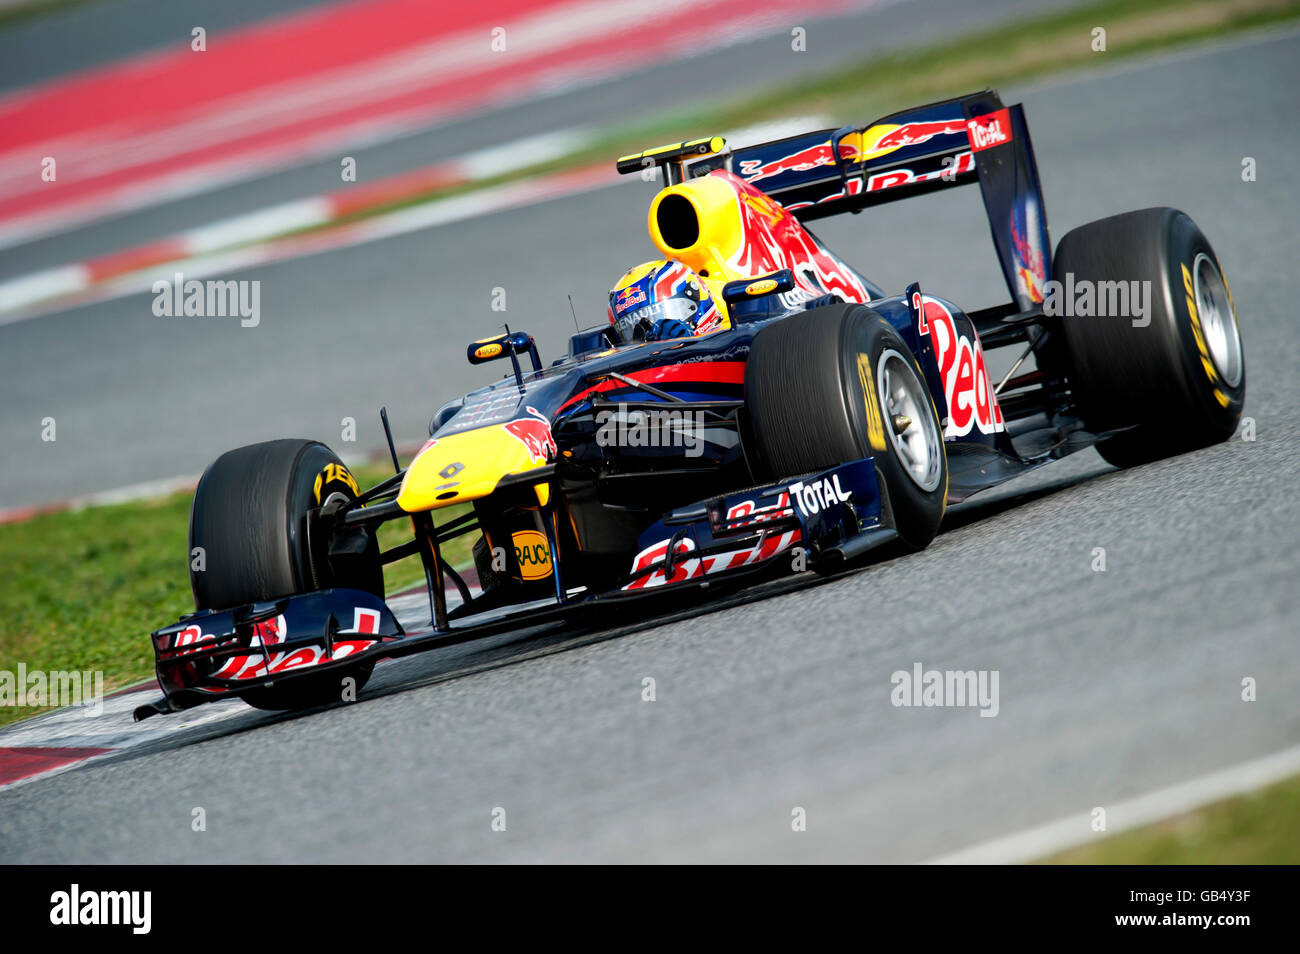 mark webber australia driving his red bull racing renault rb7 stock photo 110132499 alamy. Black Bedroom Furniture Sets. Home Design Ideas